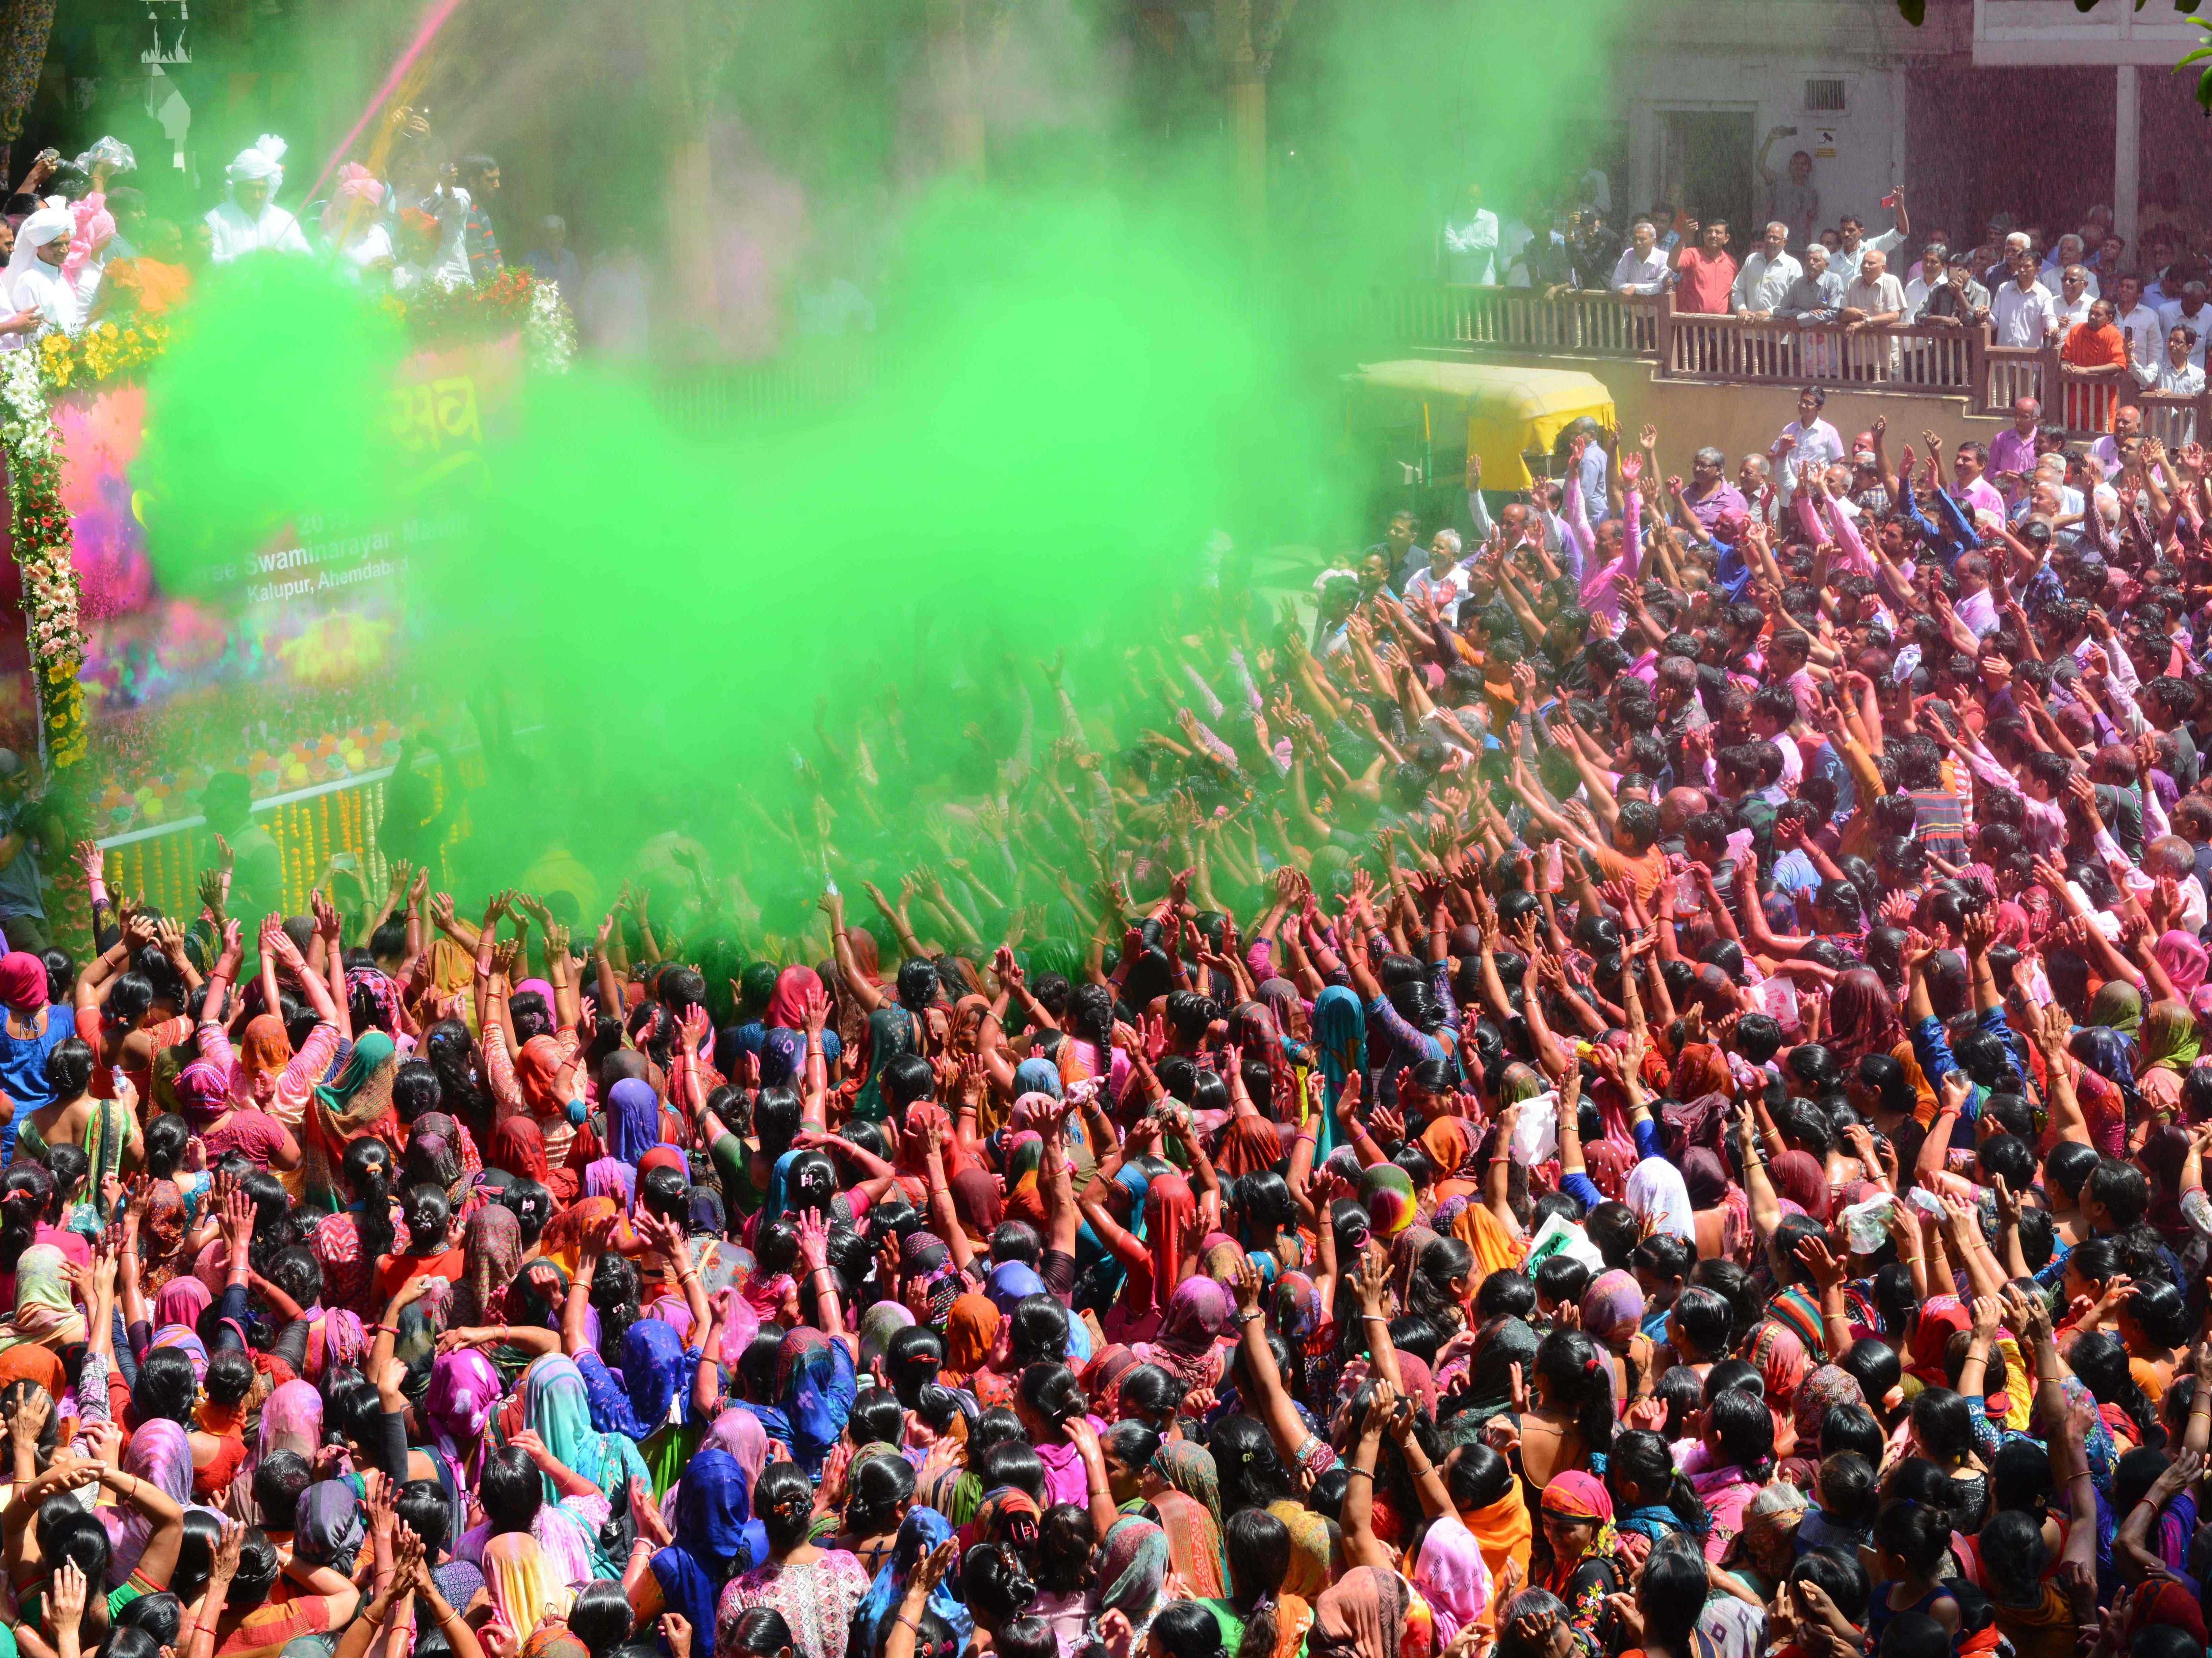 Indian Hindu devotees are sprayed with colored water as they celebrate the Holi festival at the Kalupur Swaminarayan Temple, in Ahmedabad on March 20, 2019. Holi, the popular Hindu spring festival of colors is observed in India at the end of the winter season on the last full moon of the lunar month.